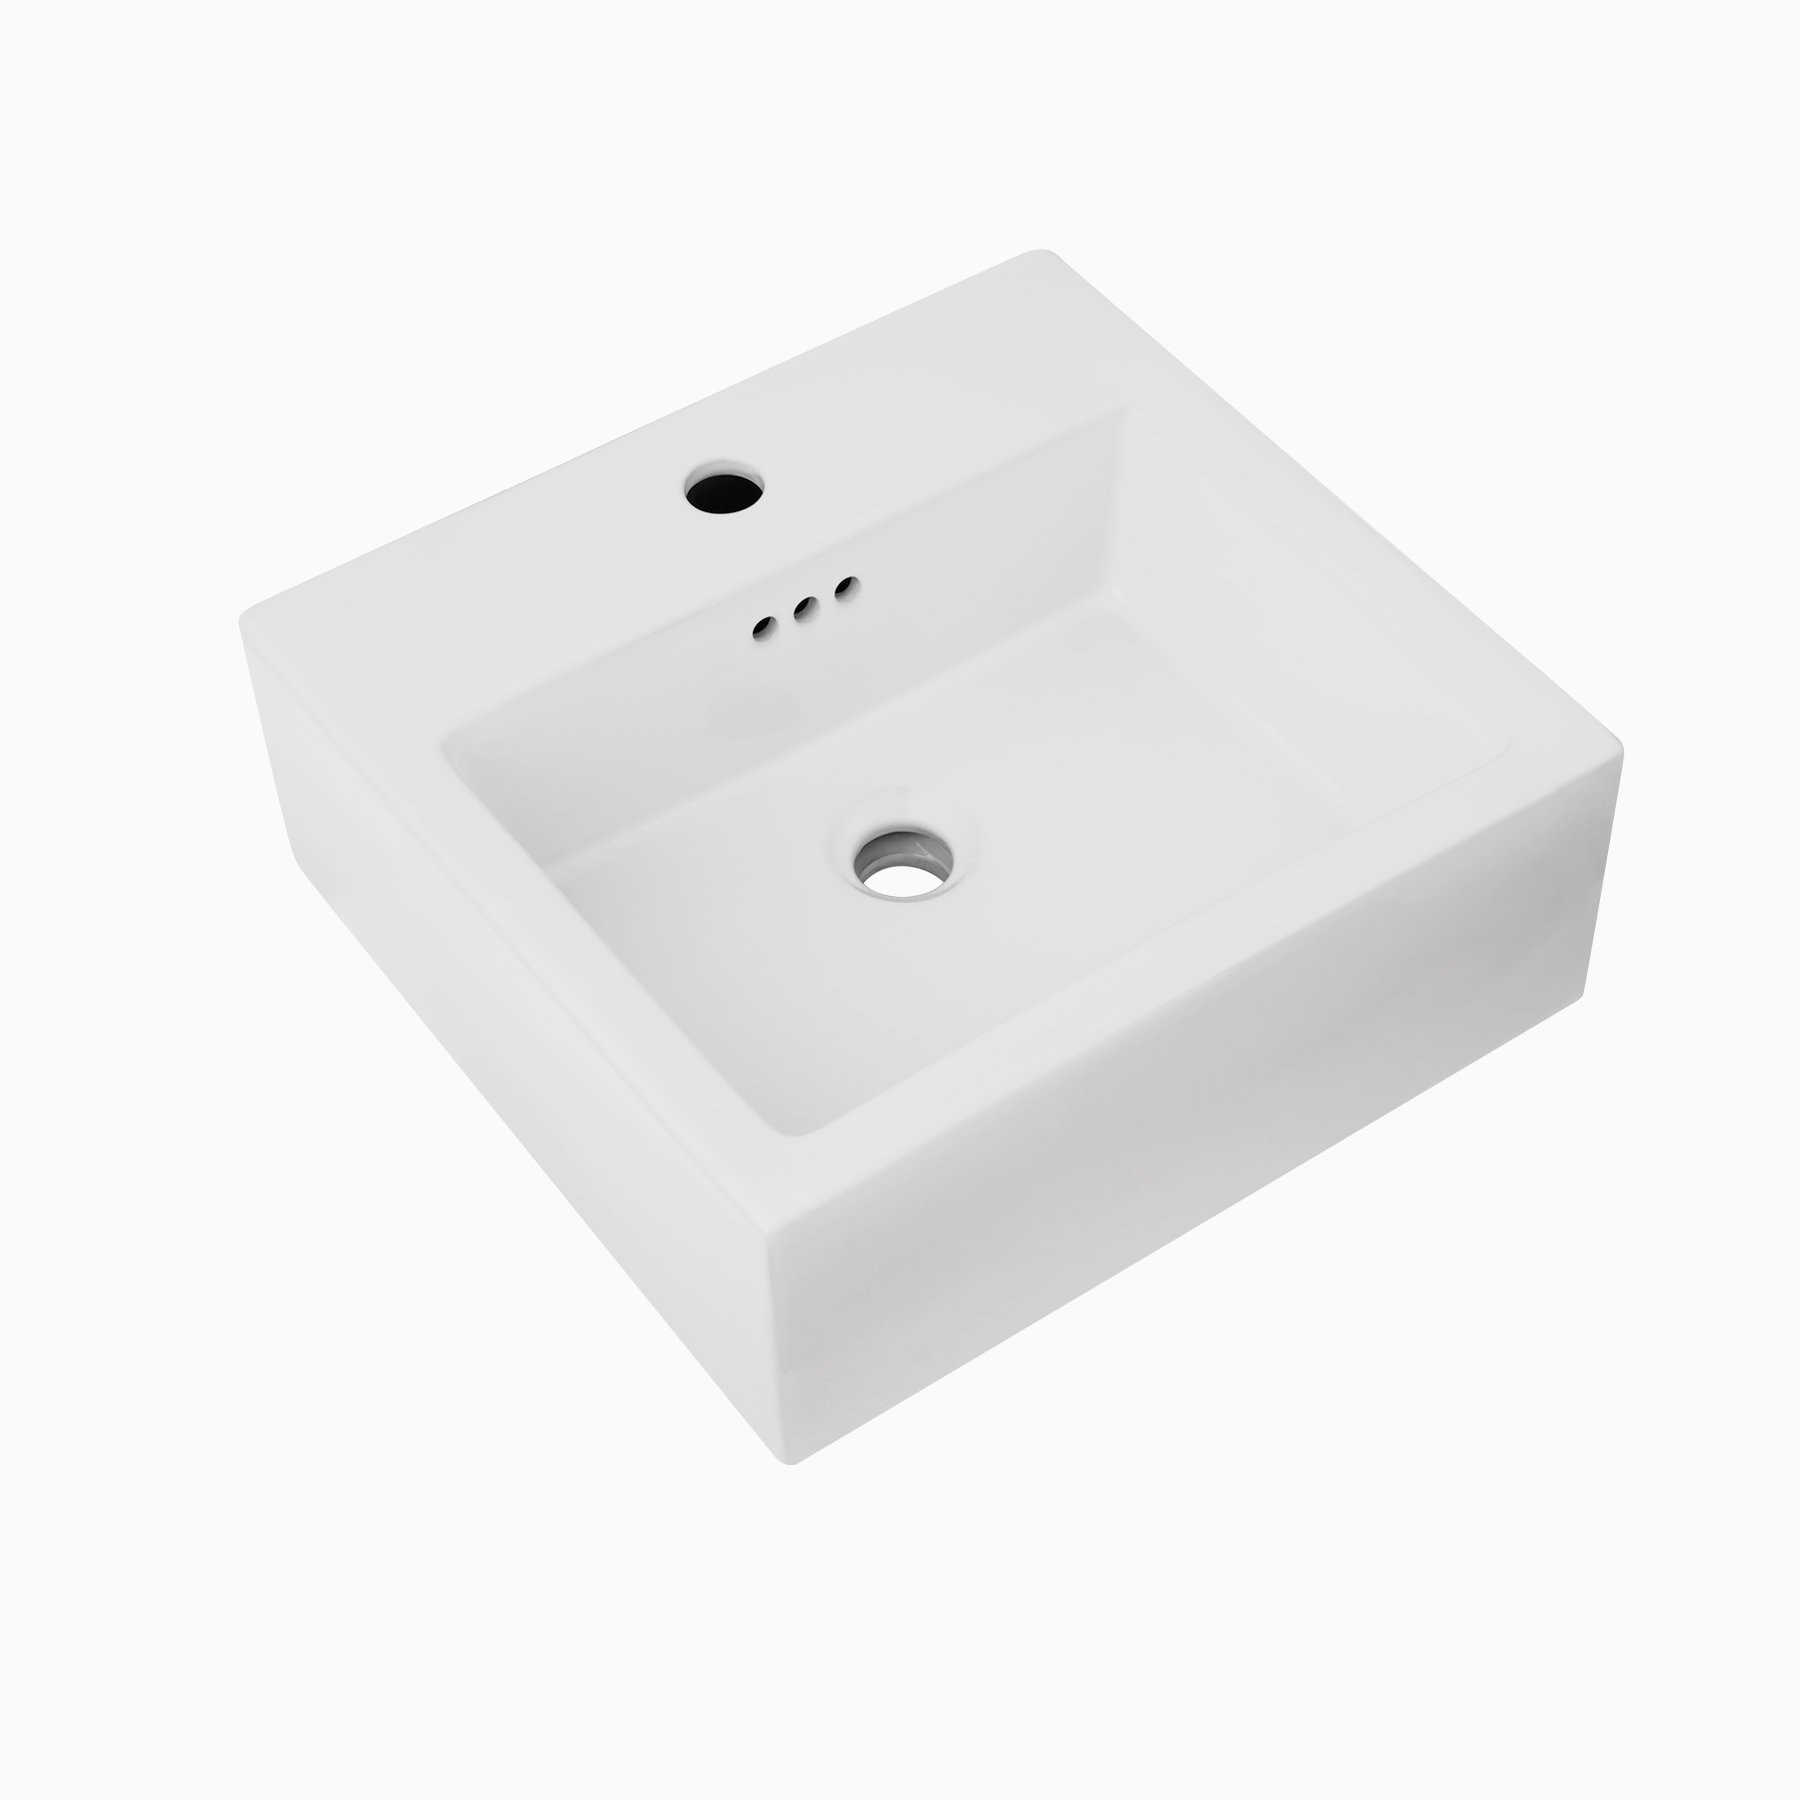 Brilon Ceramic Vessel Sink